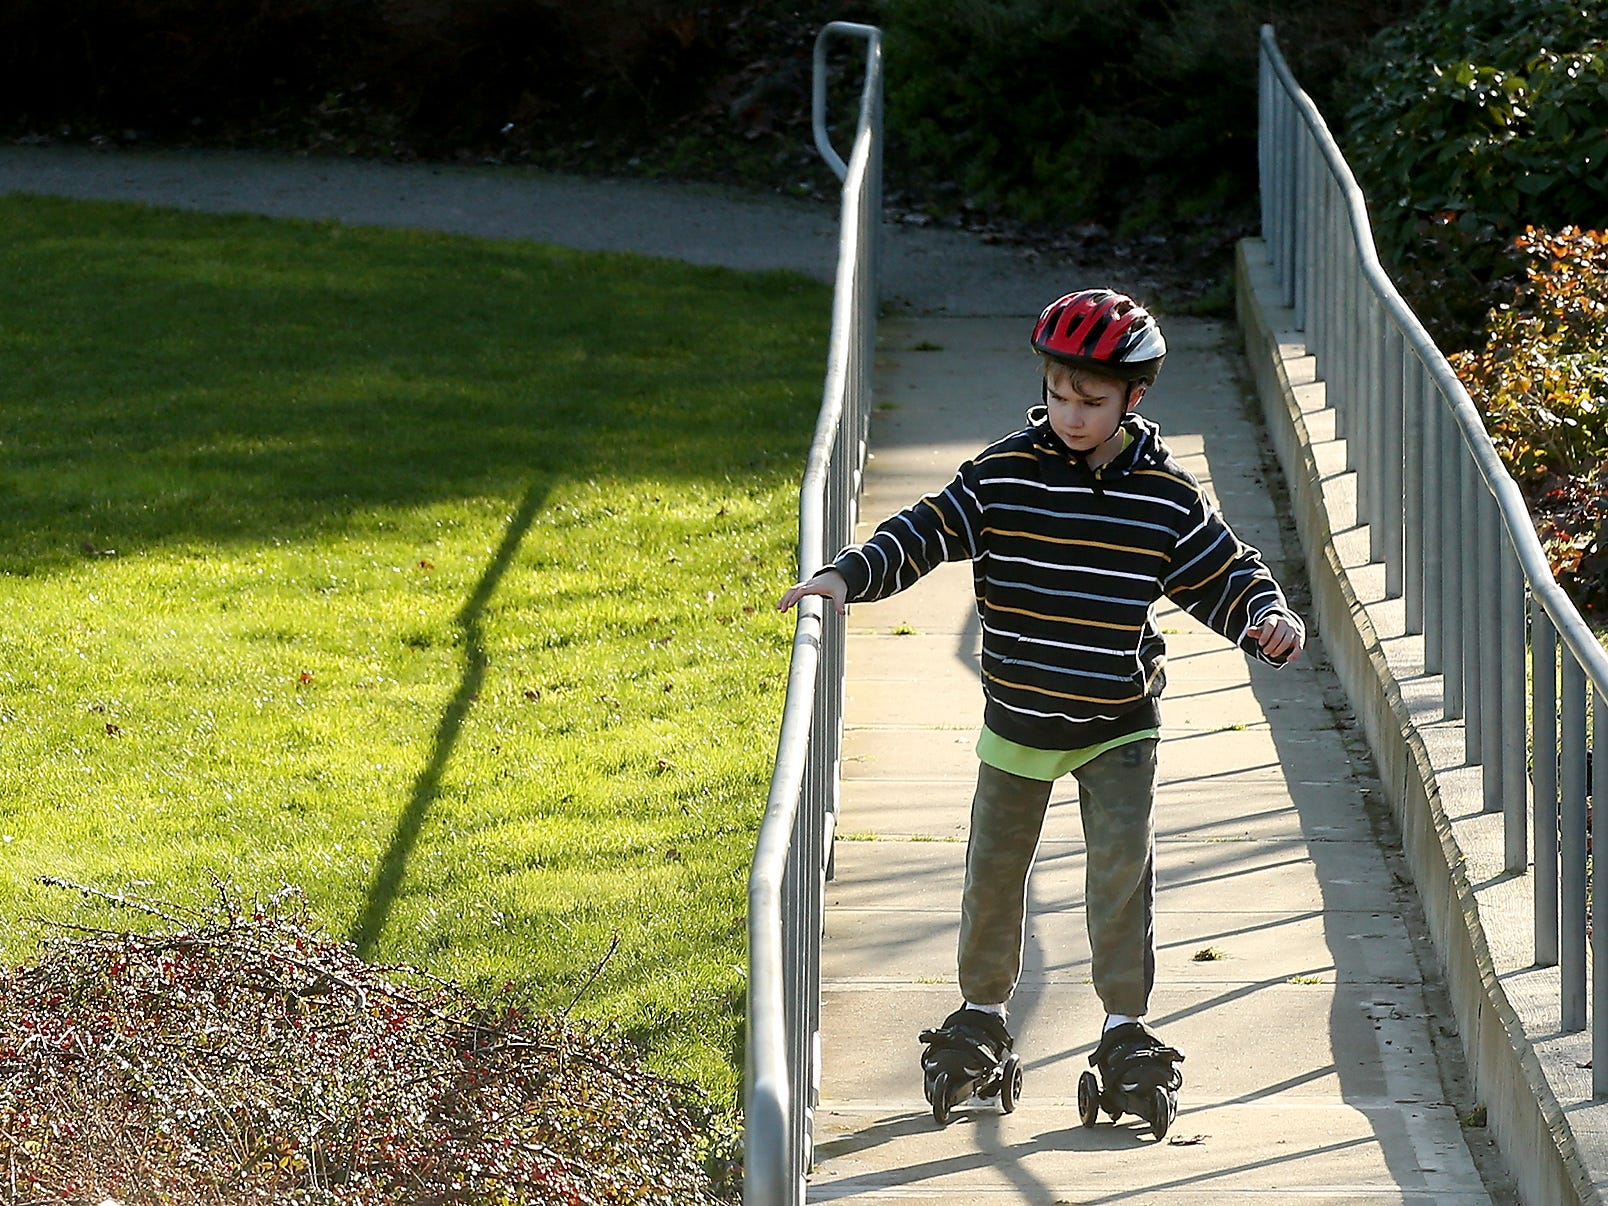 Gavin Tiemeyer, 8, grabs the railing as tries out the new skates that he received for Christmas at Kiwanis Park in Bremerton, on Monday, January 7, 2019.